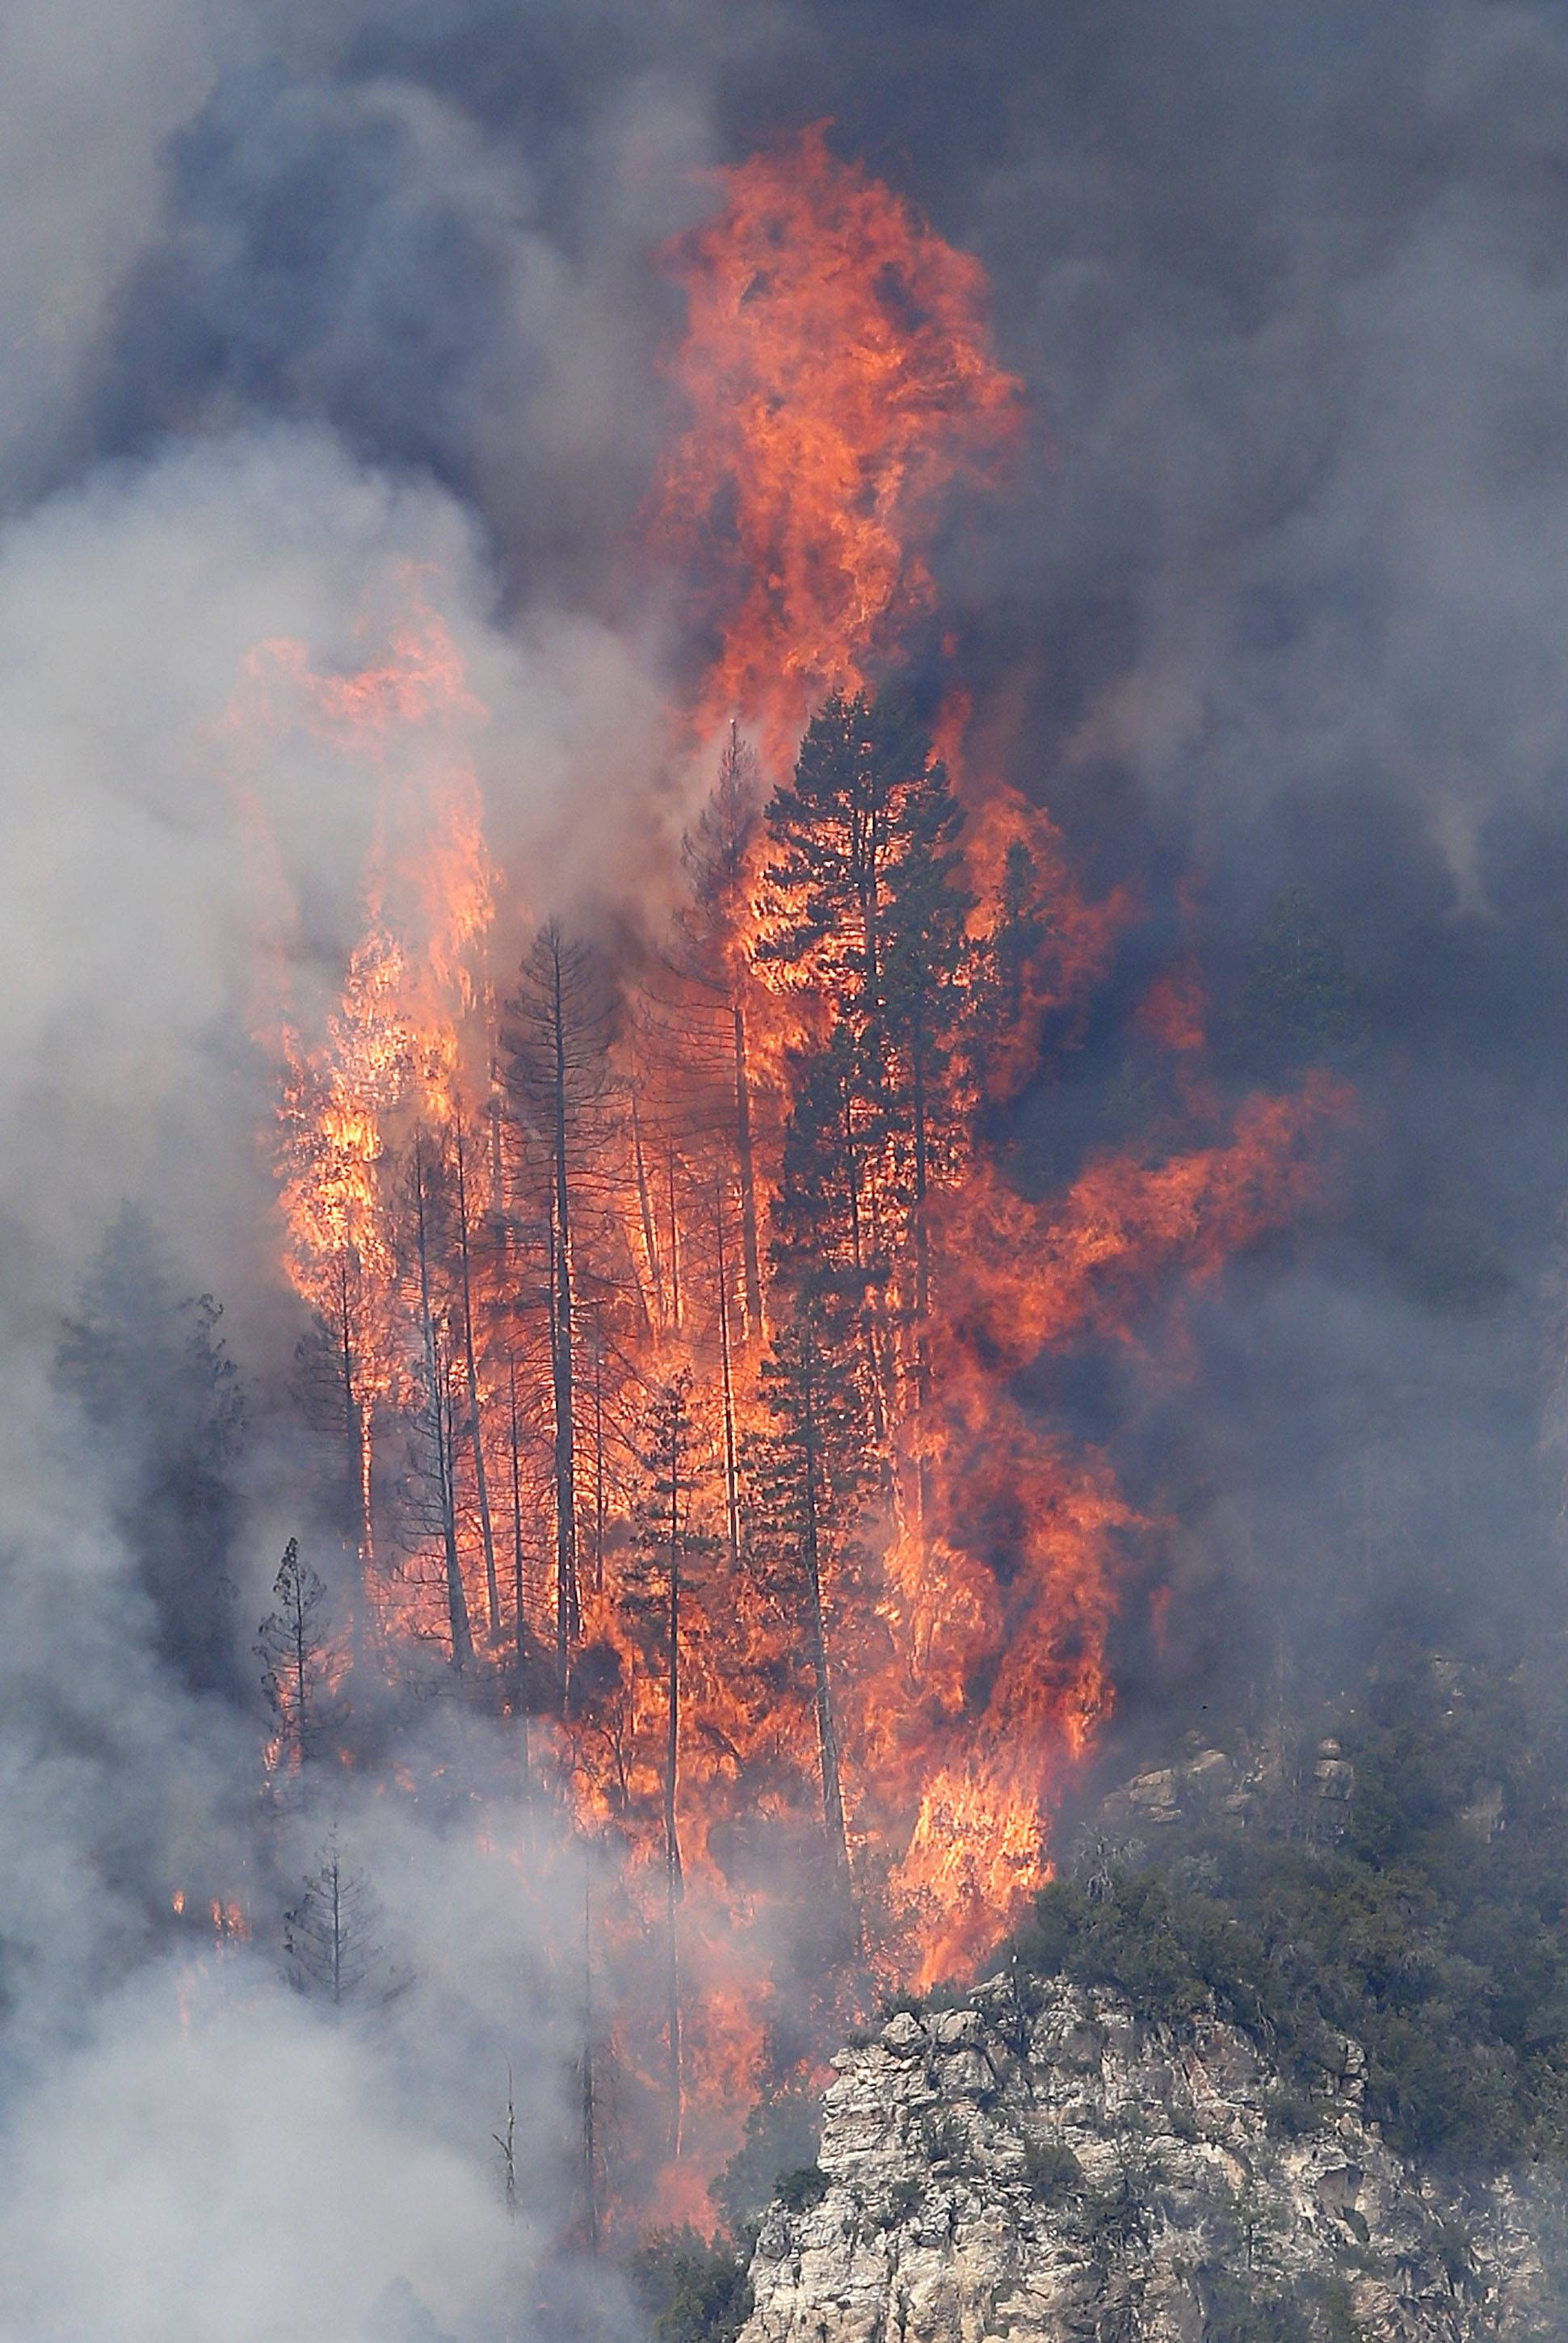 Flames shoot up over 125-feet high as the Slide Fire burns up Oak Creek Canyon on Friday, May 23, near Flagstaff, Ariz. The fire has burned approximately 7,500 acres and is five percent contained.